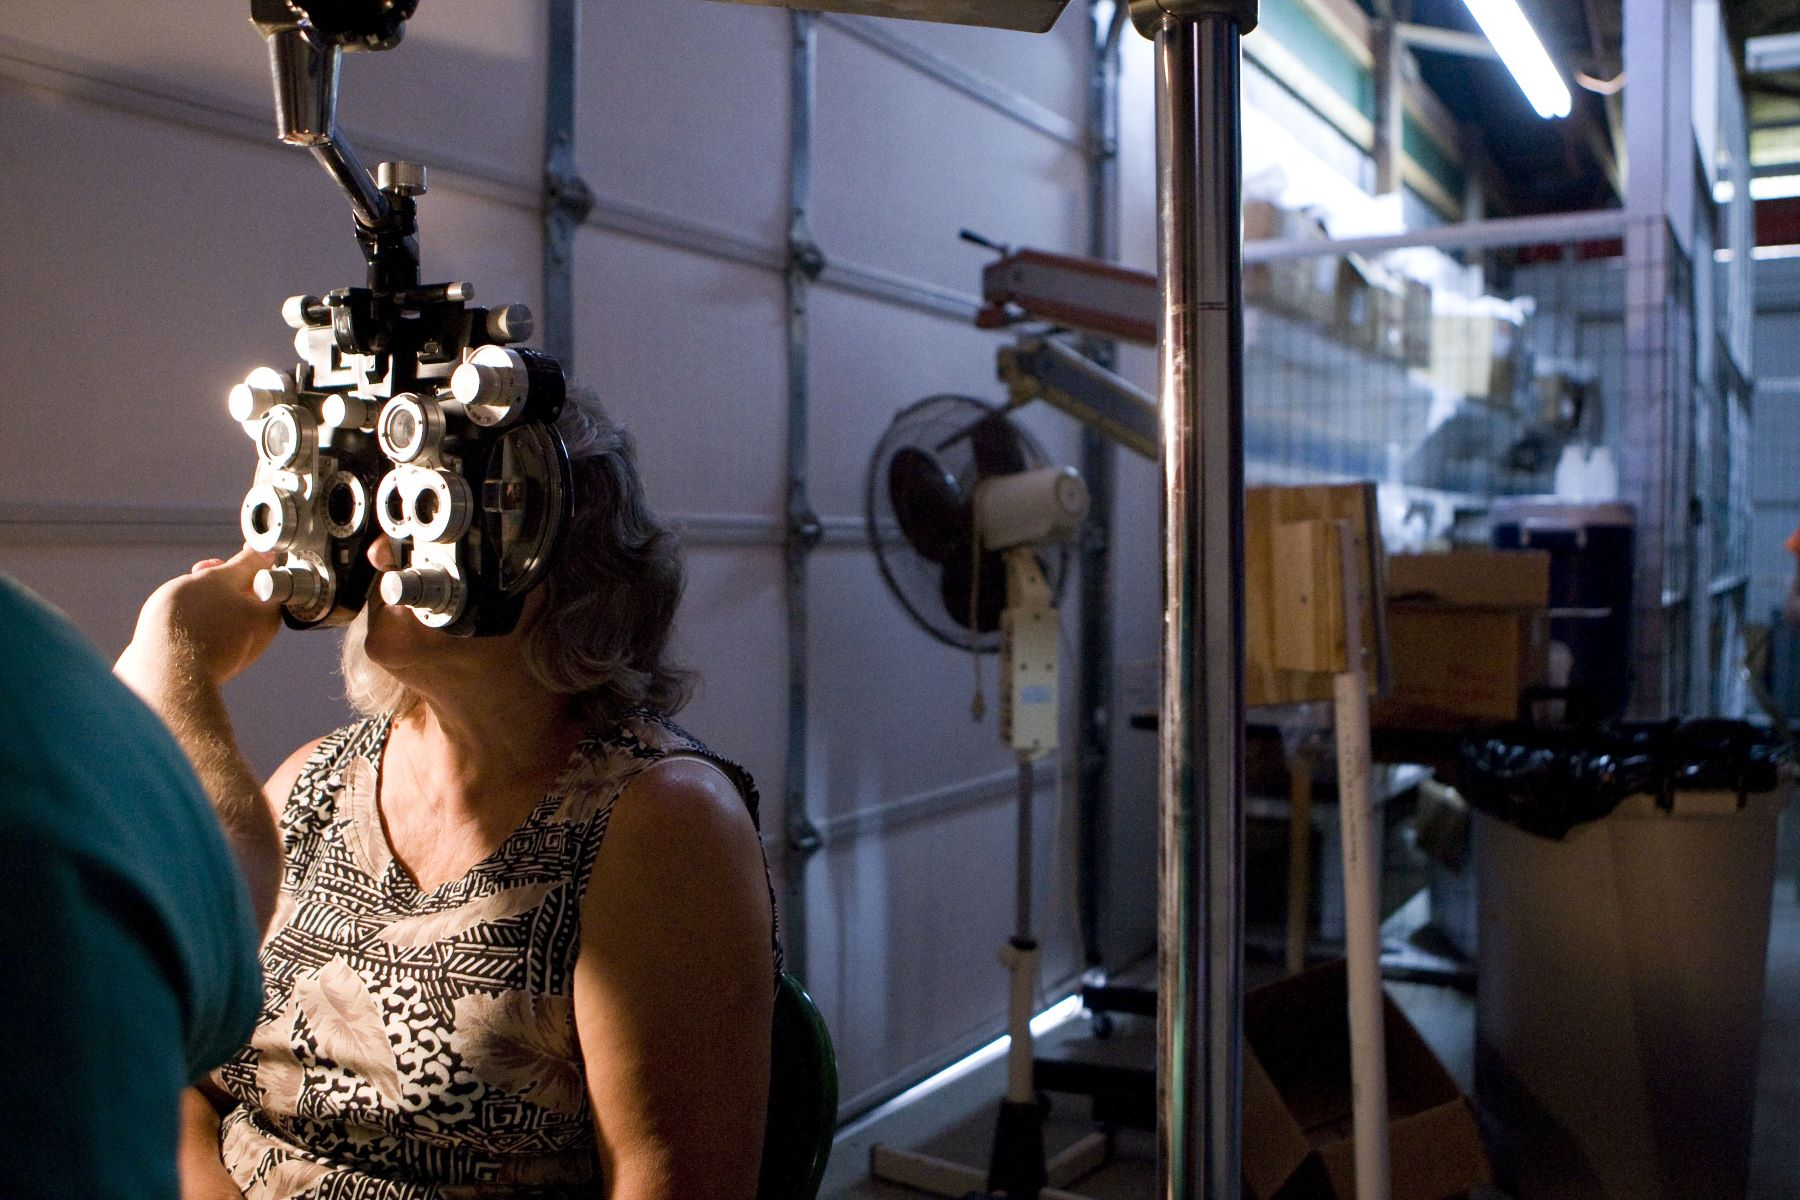 A woman undergoing an eye exam and having her eyes dilated